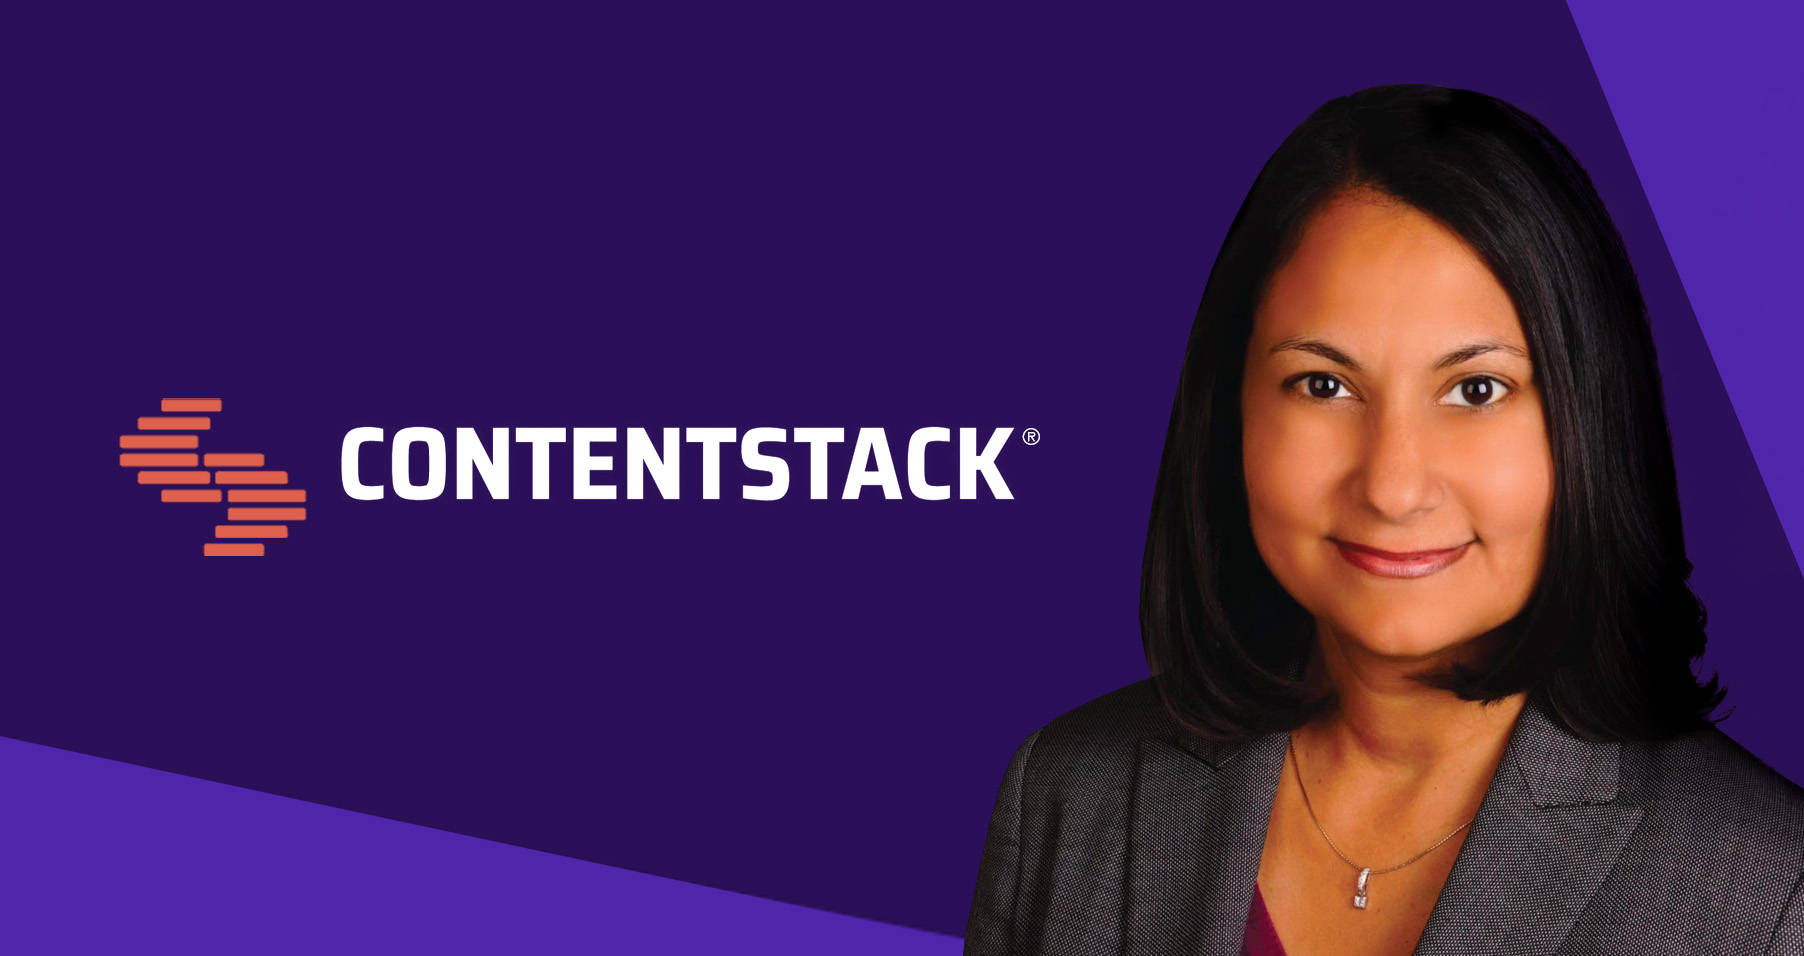 Contentstack logo with image of Neha Sampat, CEO